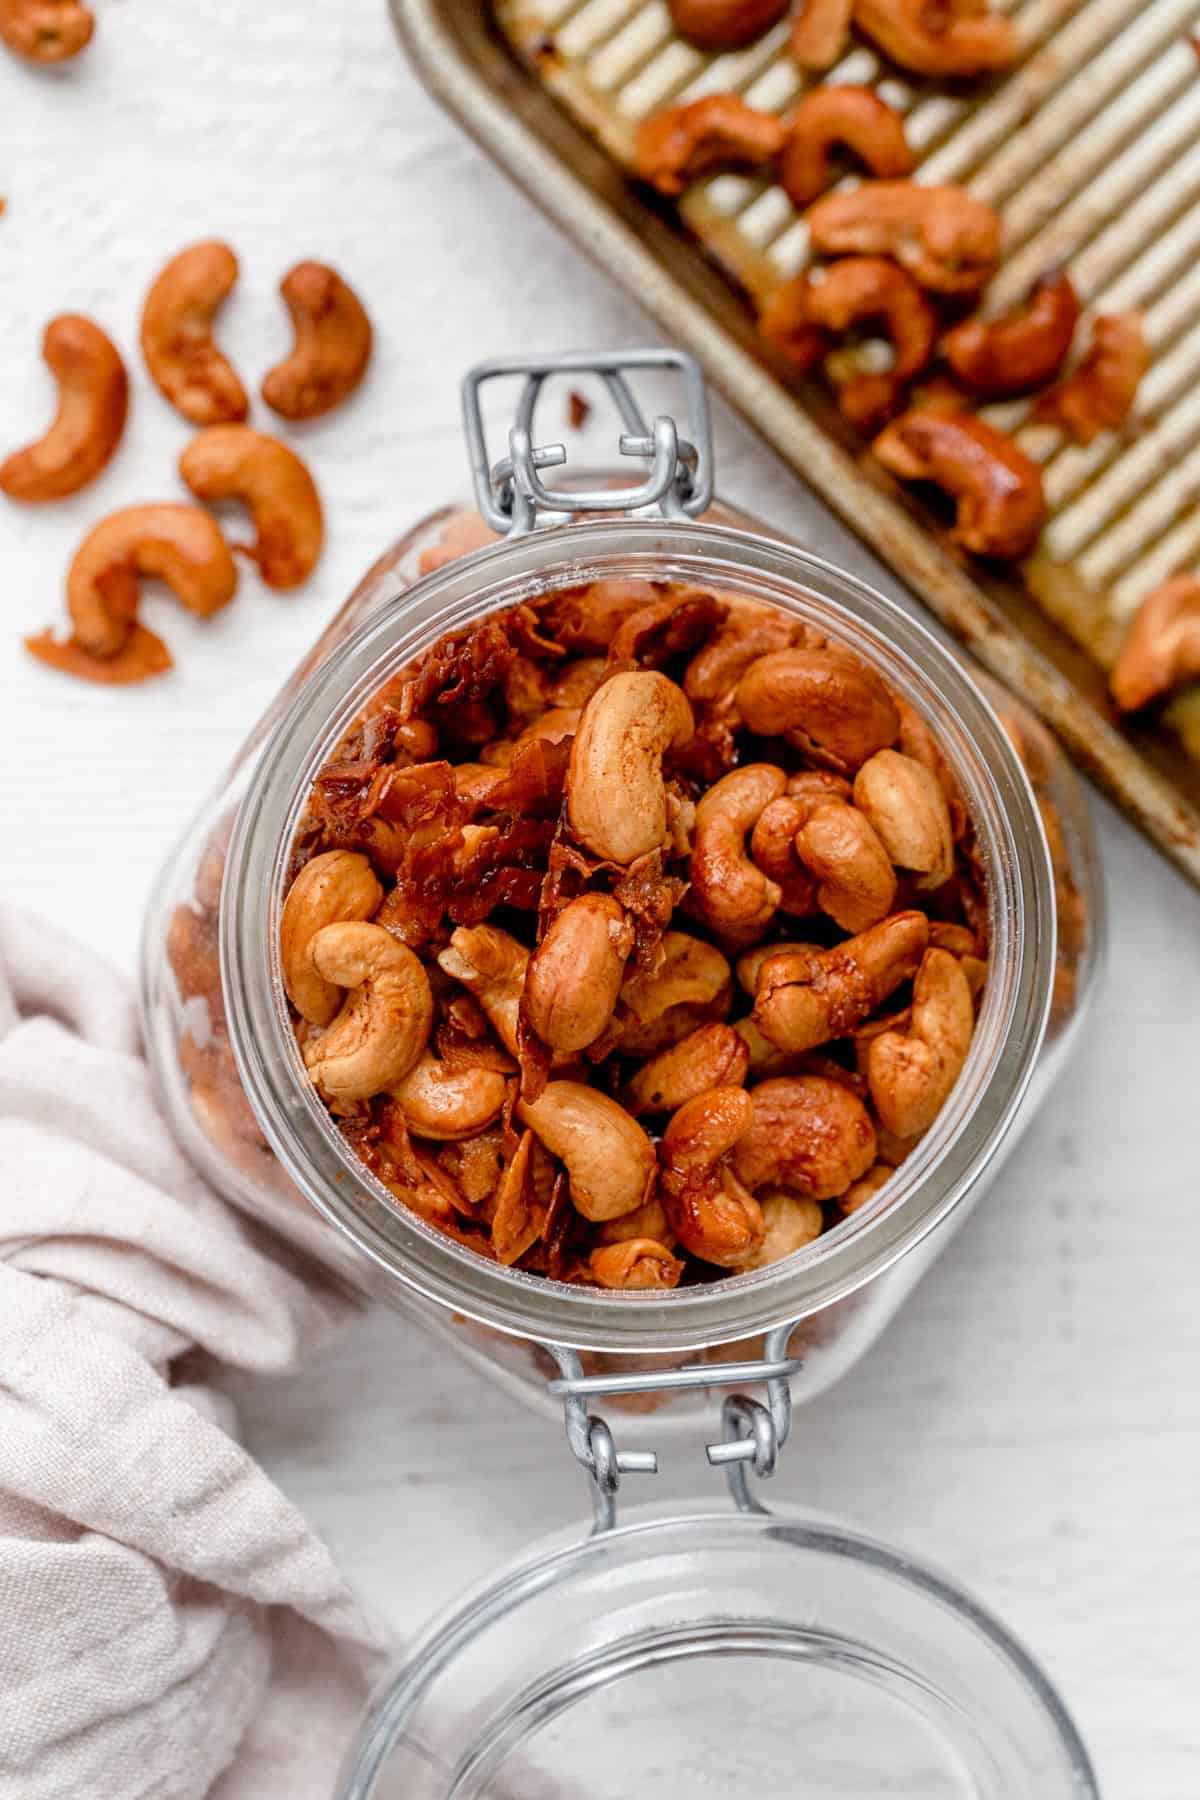 Roasted cashews stored in open glass jar with baking pan and cashews next to it